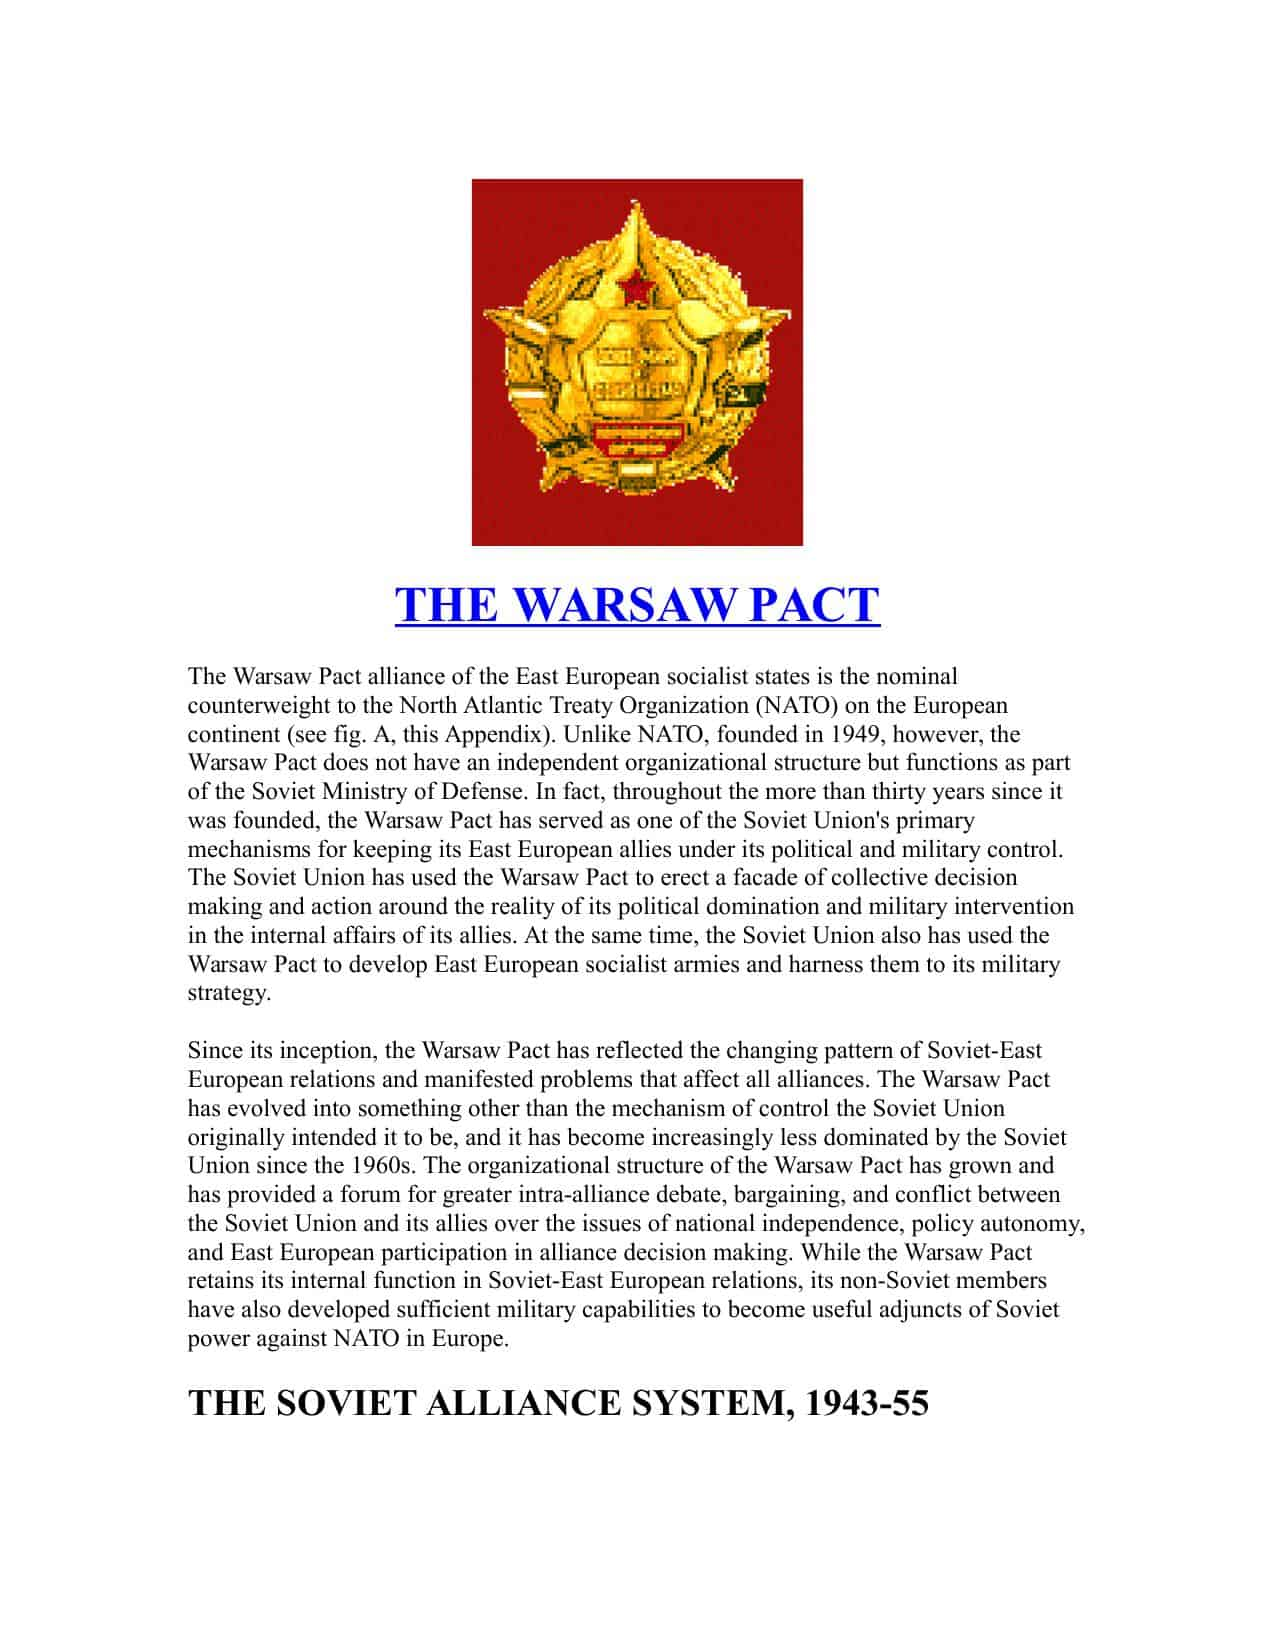 The Warsaw Pact Facts & Information | GCSE Worksheet Resource